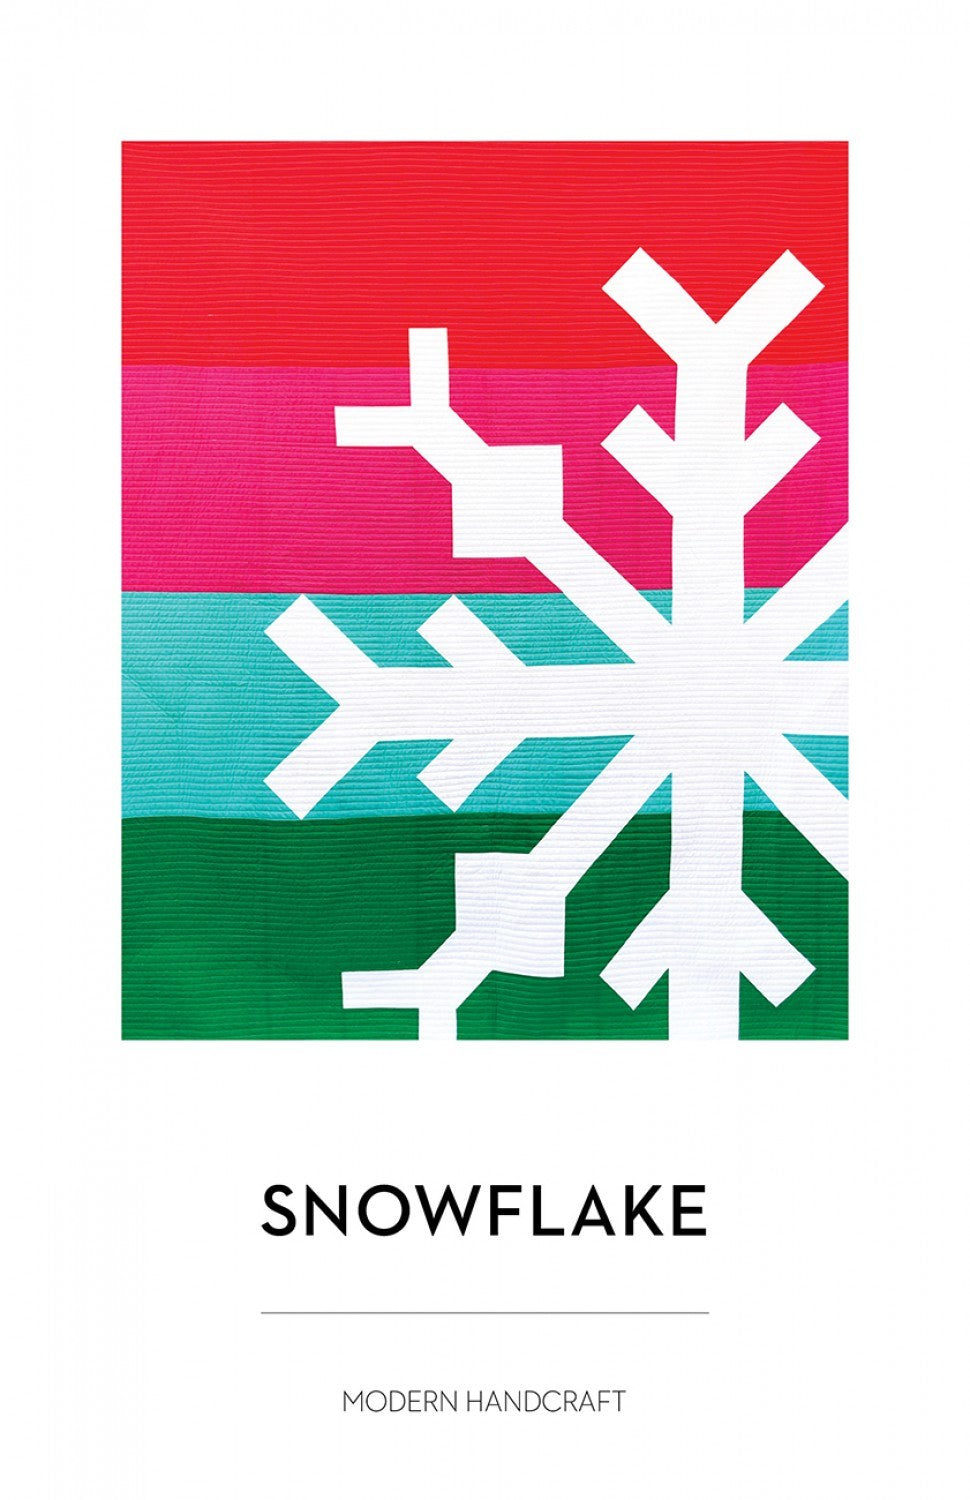 Snowflake by Modern Handcraft - PAPER Pattern